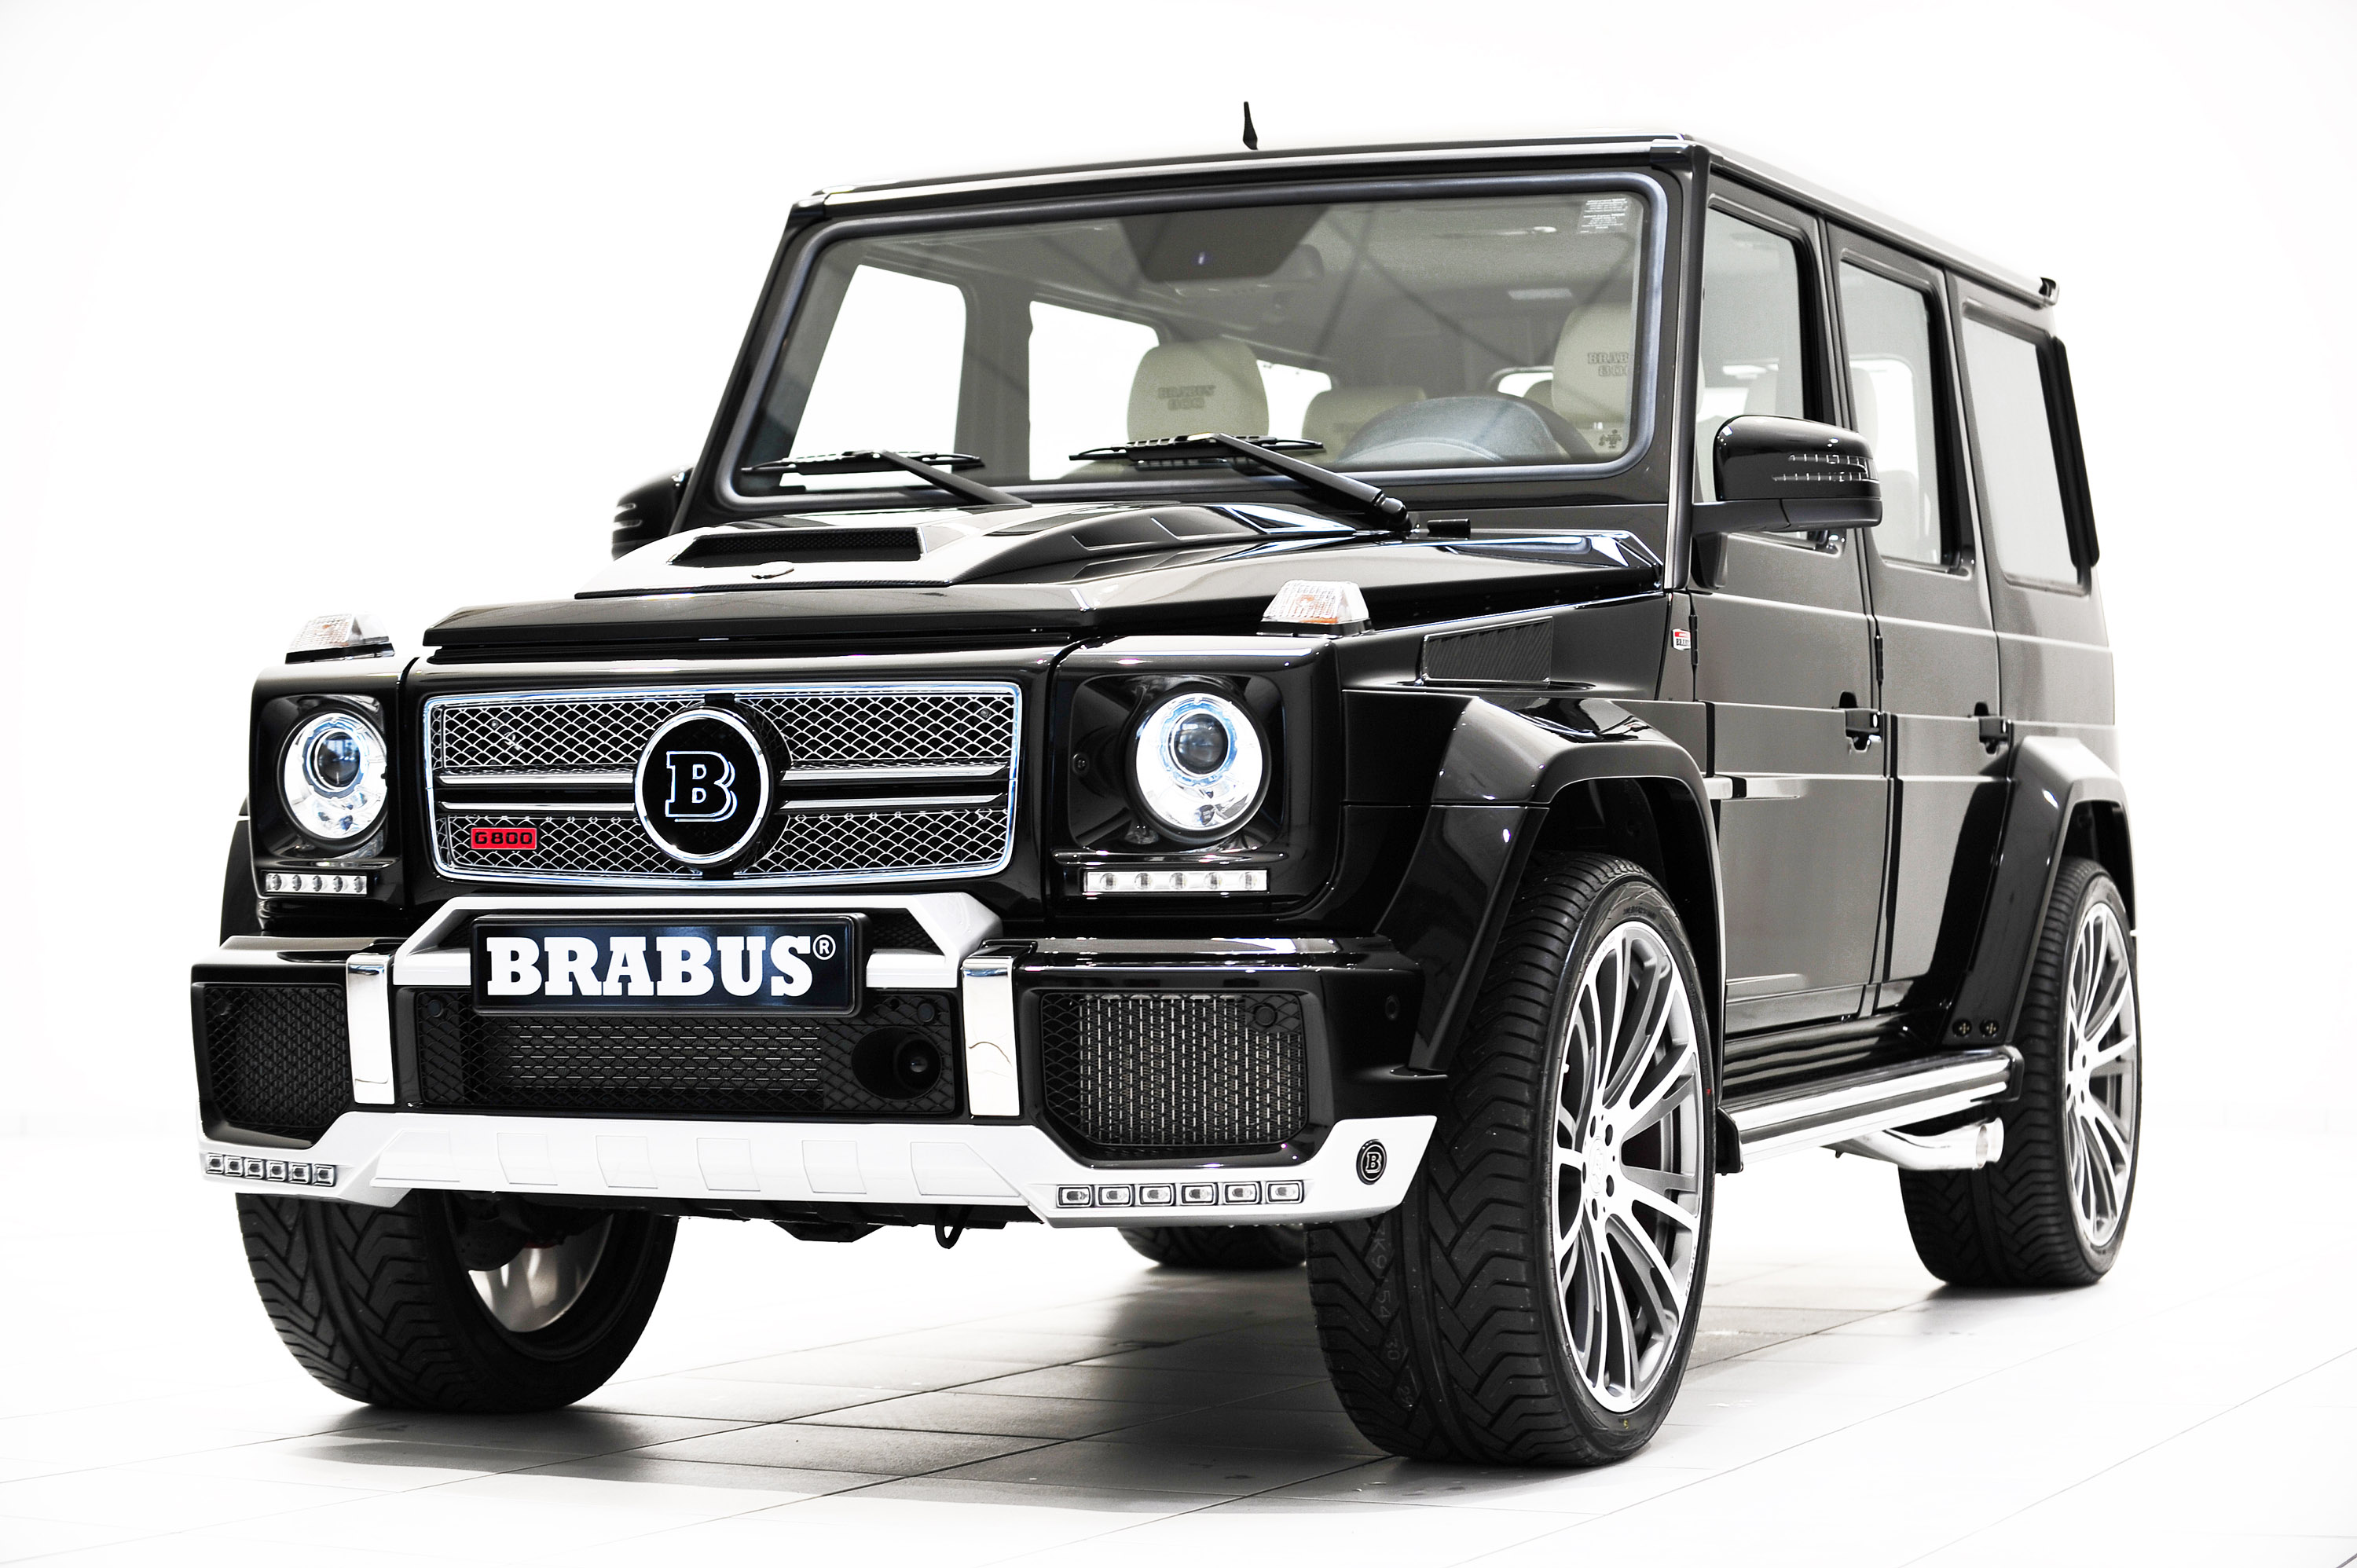 brabus 800 widestar at the 2013 qatar motor show. Black Bedroom Furniture Sets. Home Design Ideas